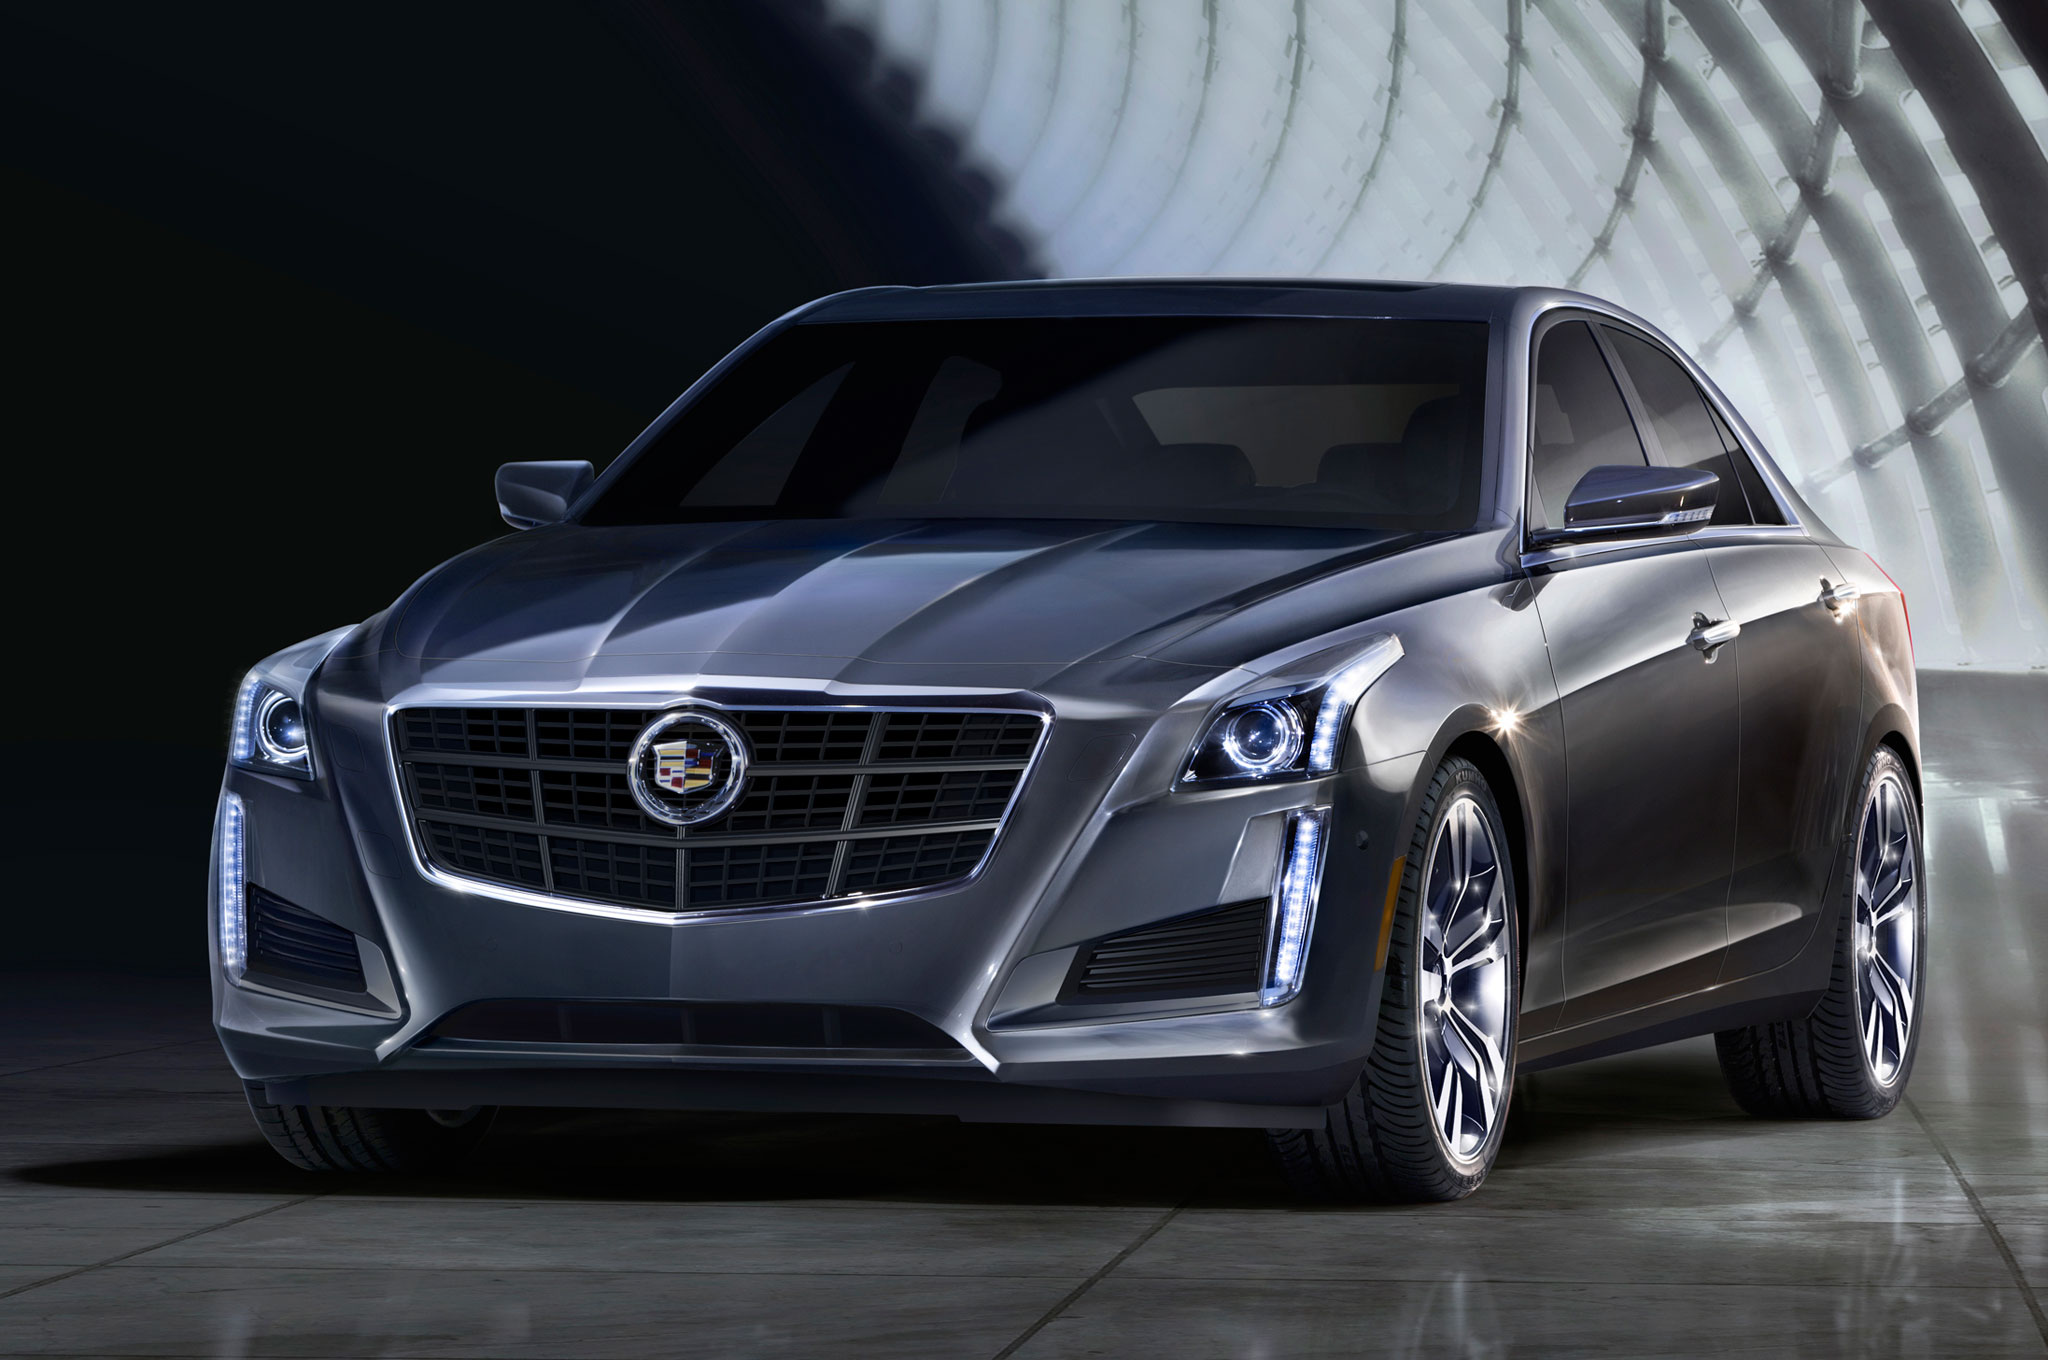 Cadillac Ats 2 0 T >> Totd You Pick 2014 Cadillac Ats 3 6 Or Cts 2 0t Motortrend